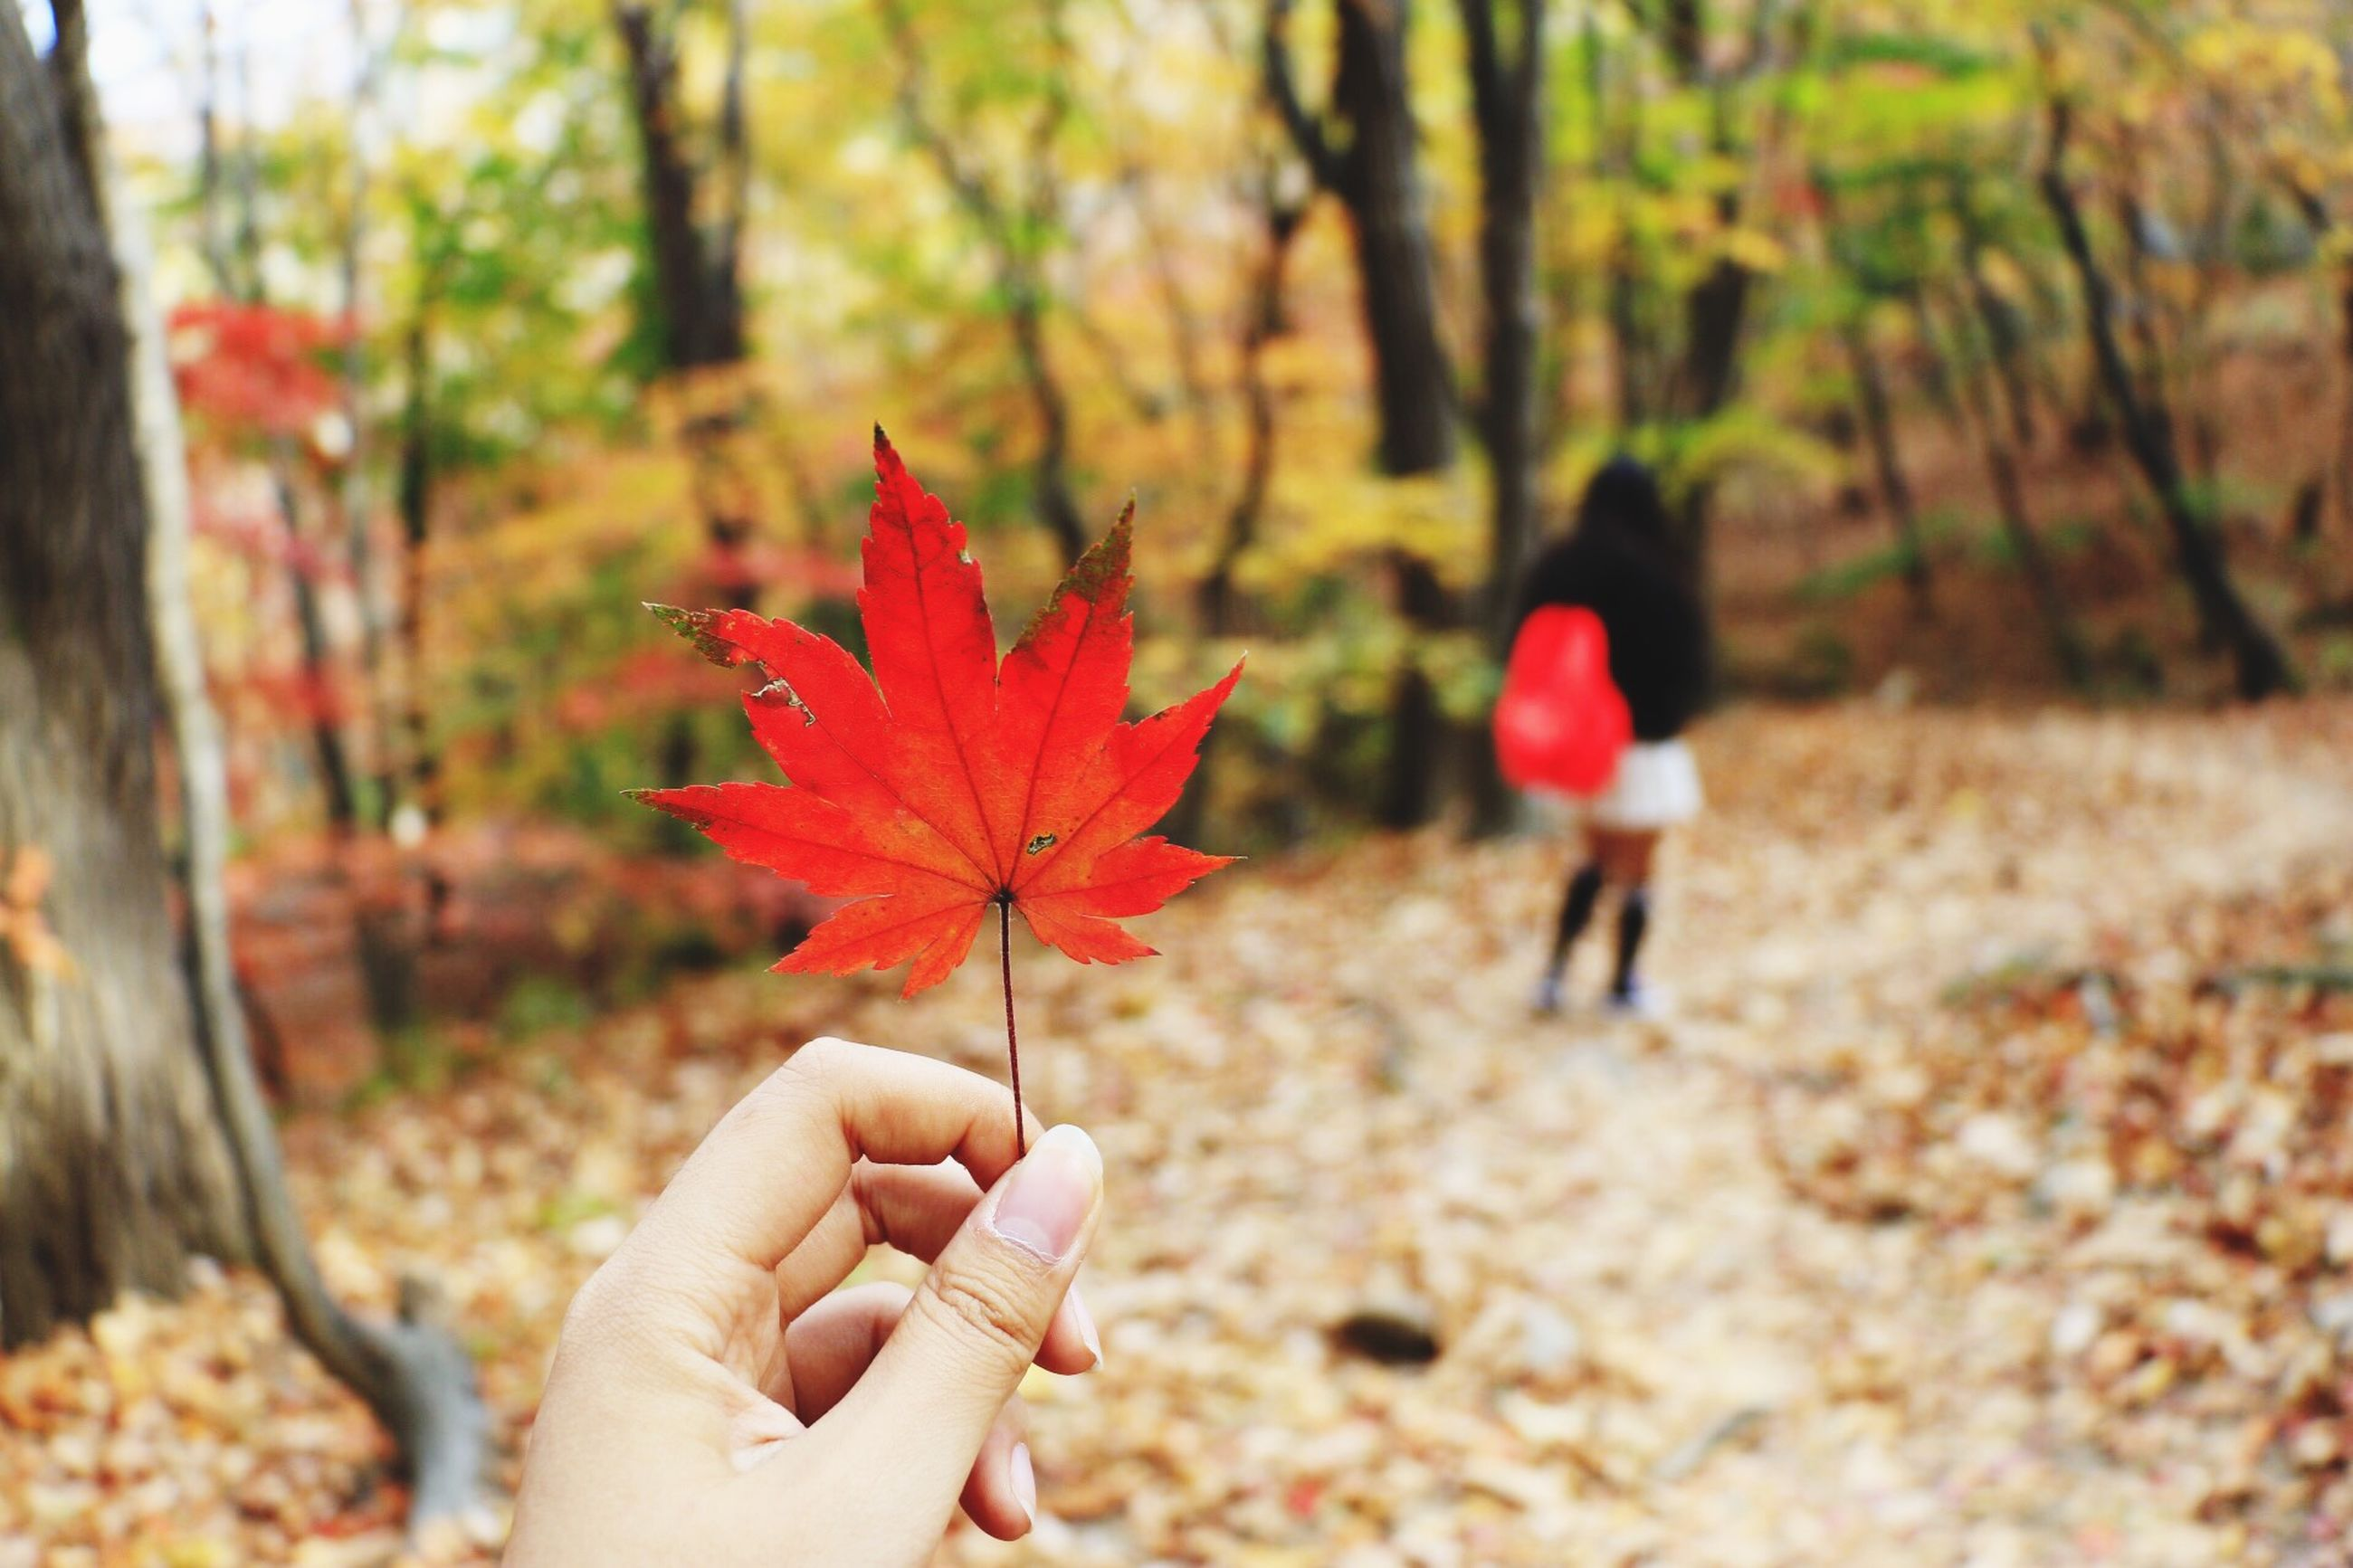 person, focus on foreground, lifestyles, holding, unrecognizable person, autumn, red, leisure activity, part of, change, leaf, tree, season, cropped, human finger, personal perspective